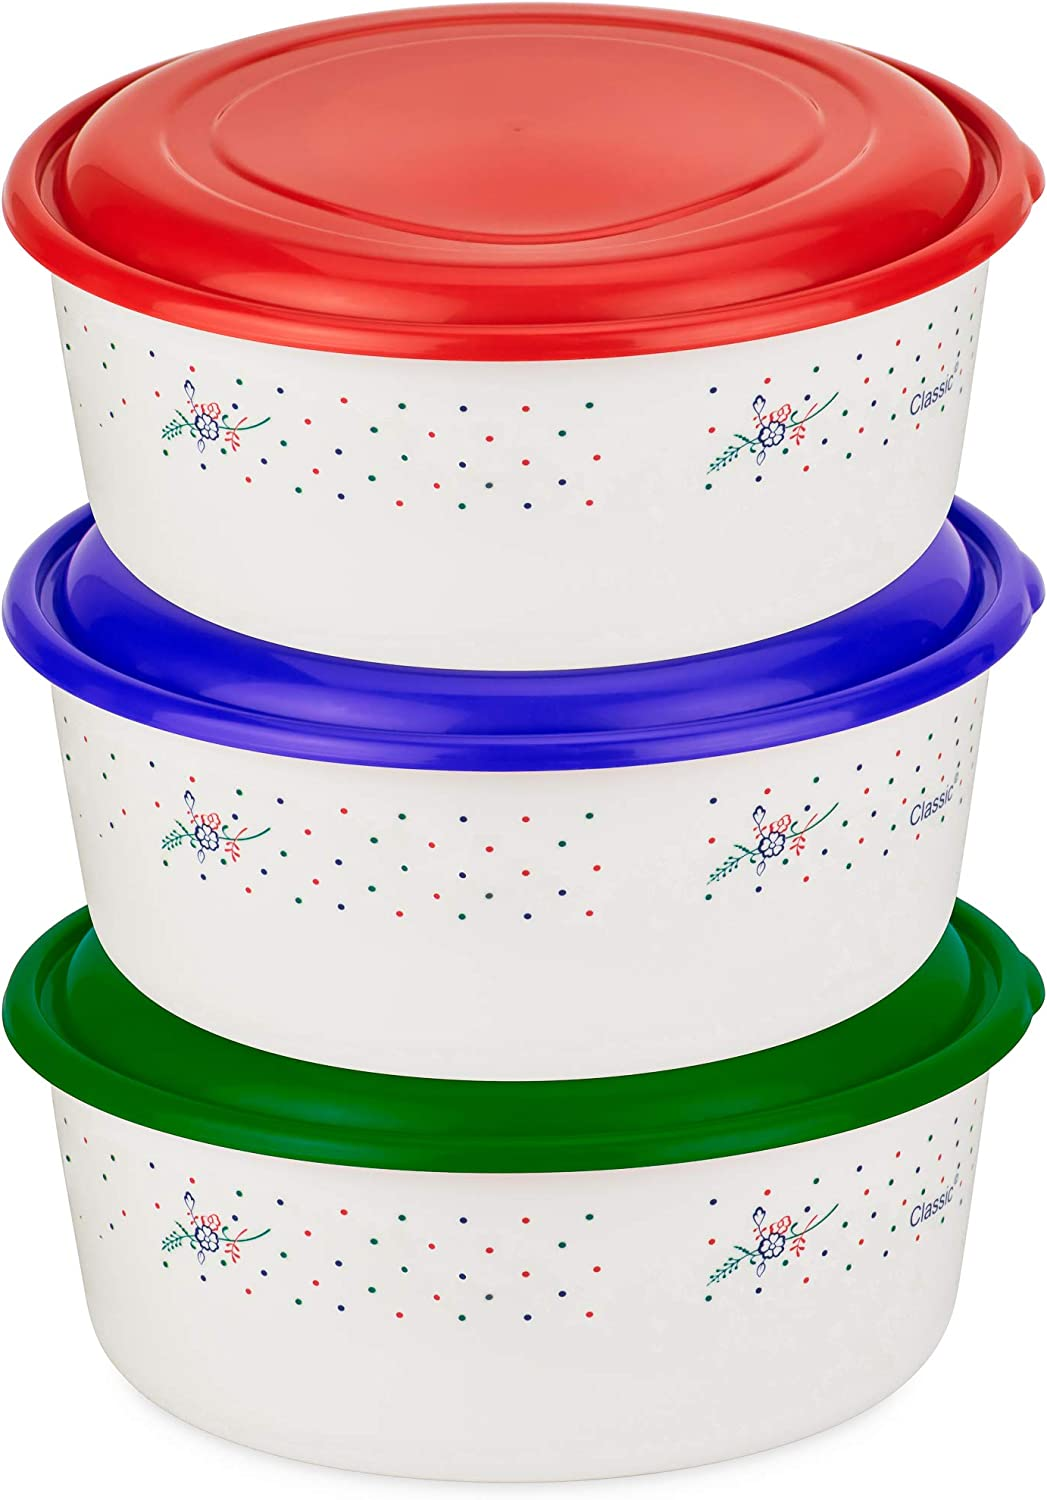 DecorRack 4 Quart Food Storage Container with Leak Proof Lid, Mixing Bowl, Reusable Large Container for Soup, Potluck, Meal Prep, (Assorted 3pk)